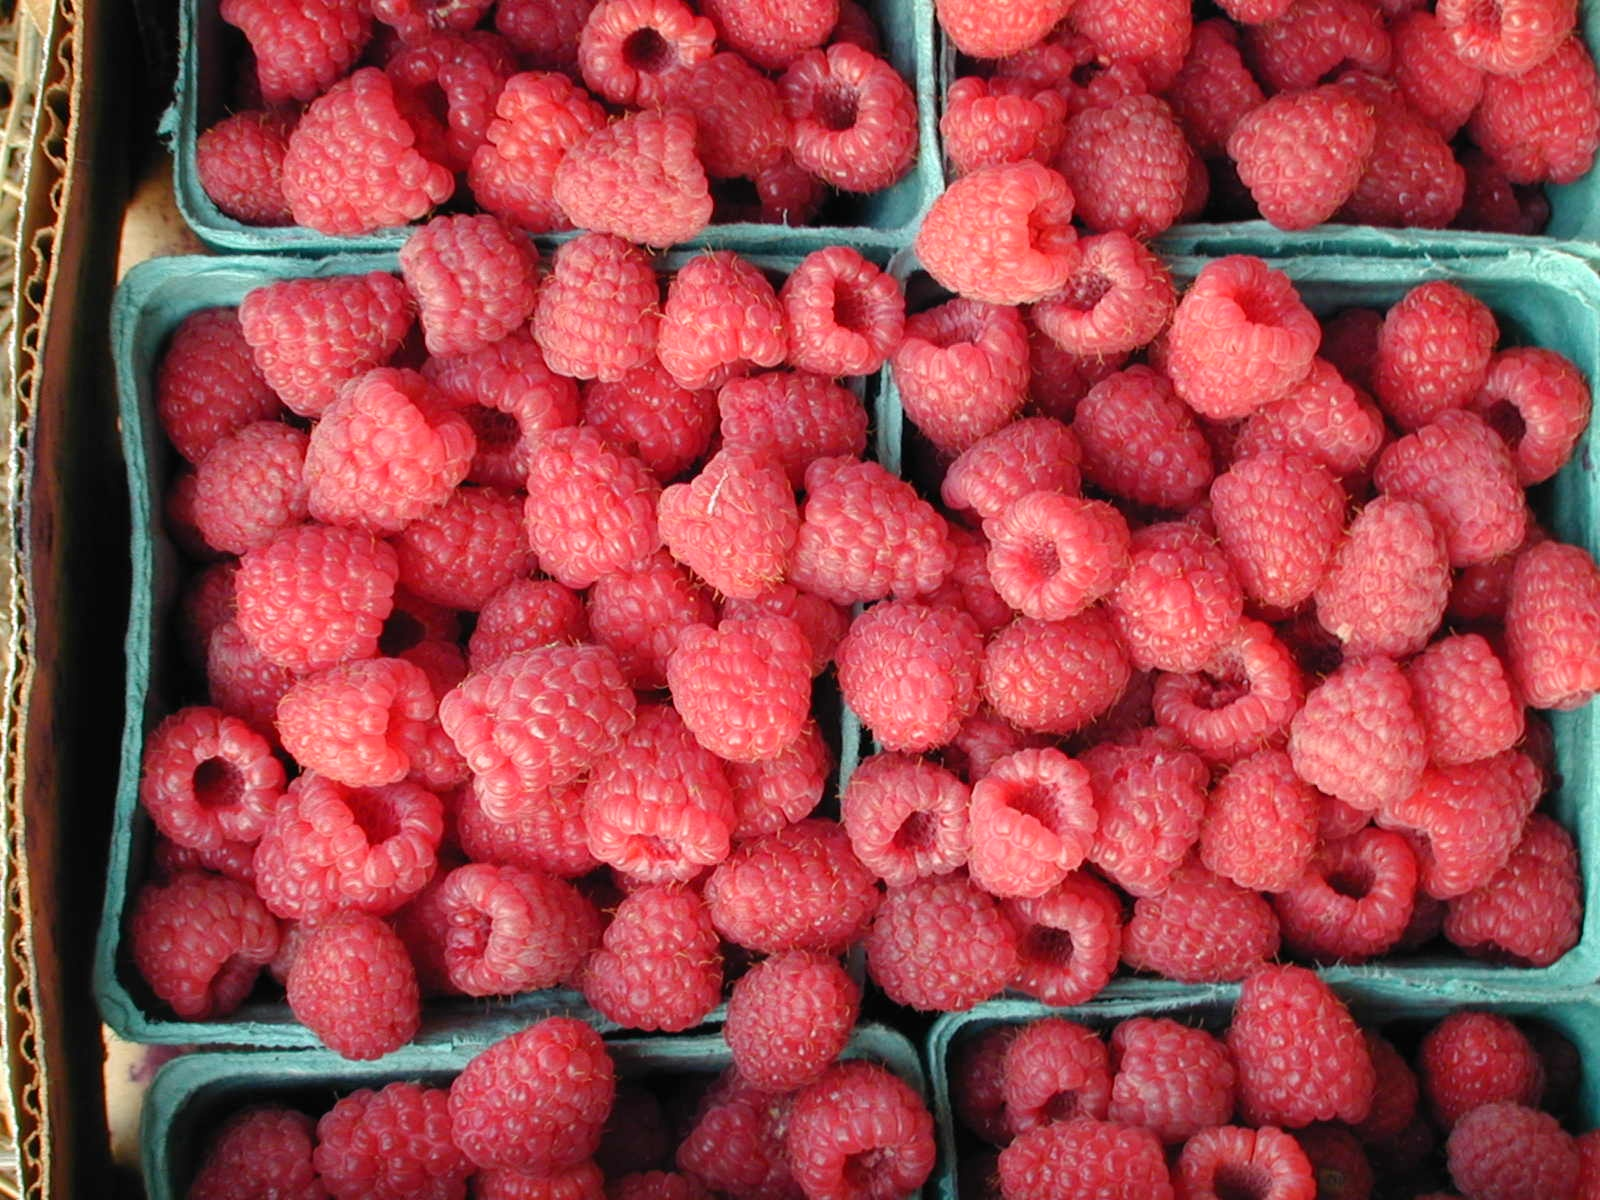 Raspberries from Lost Corner